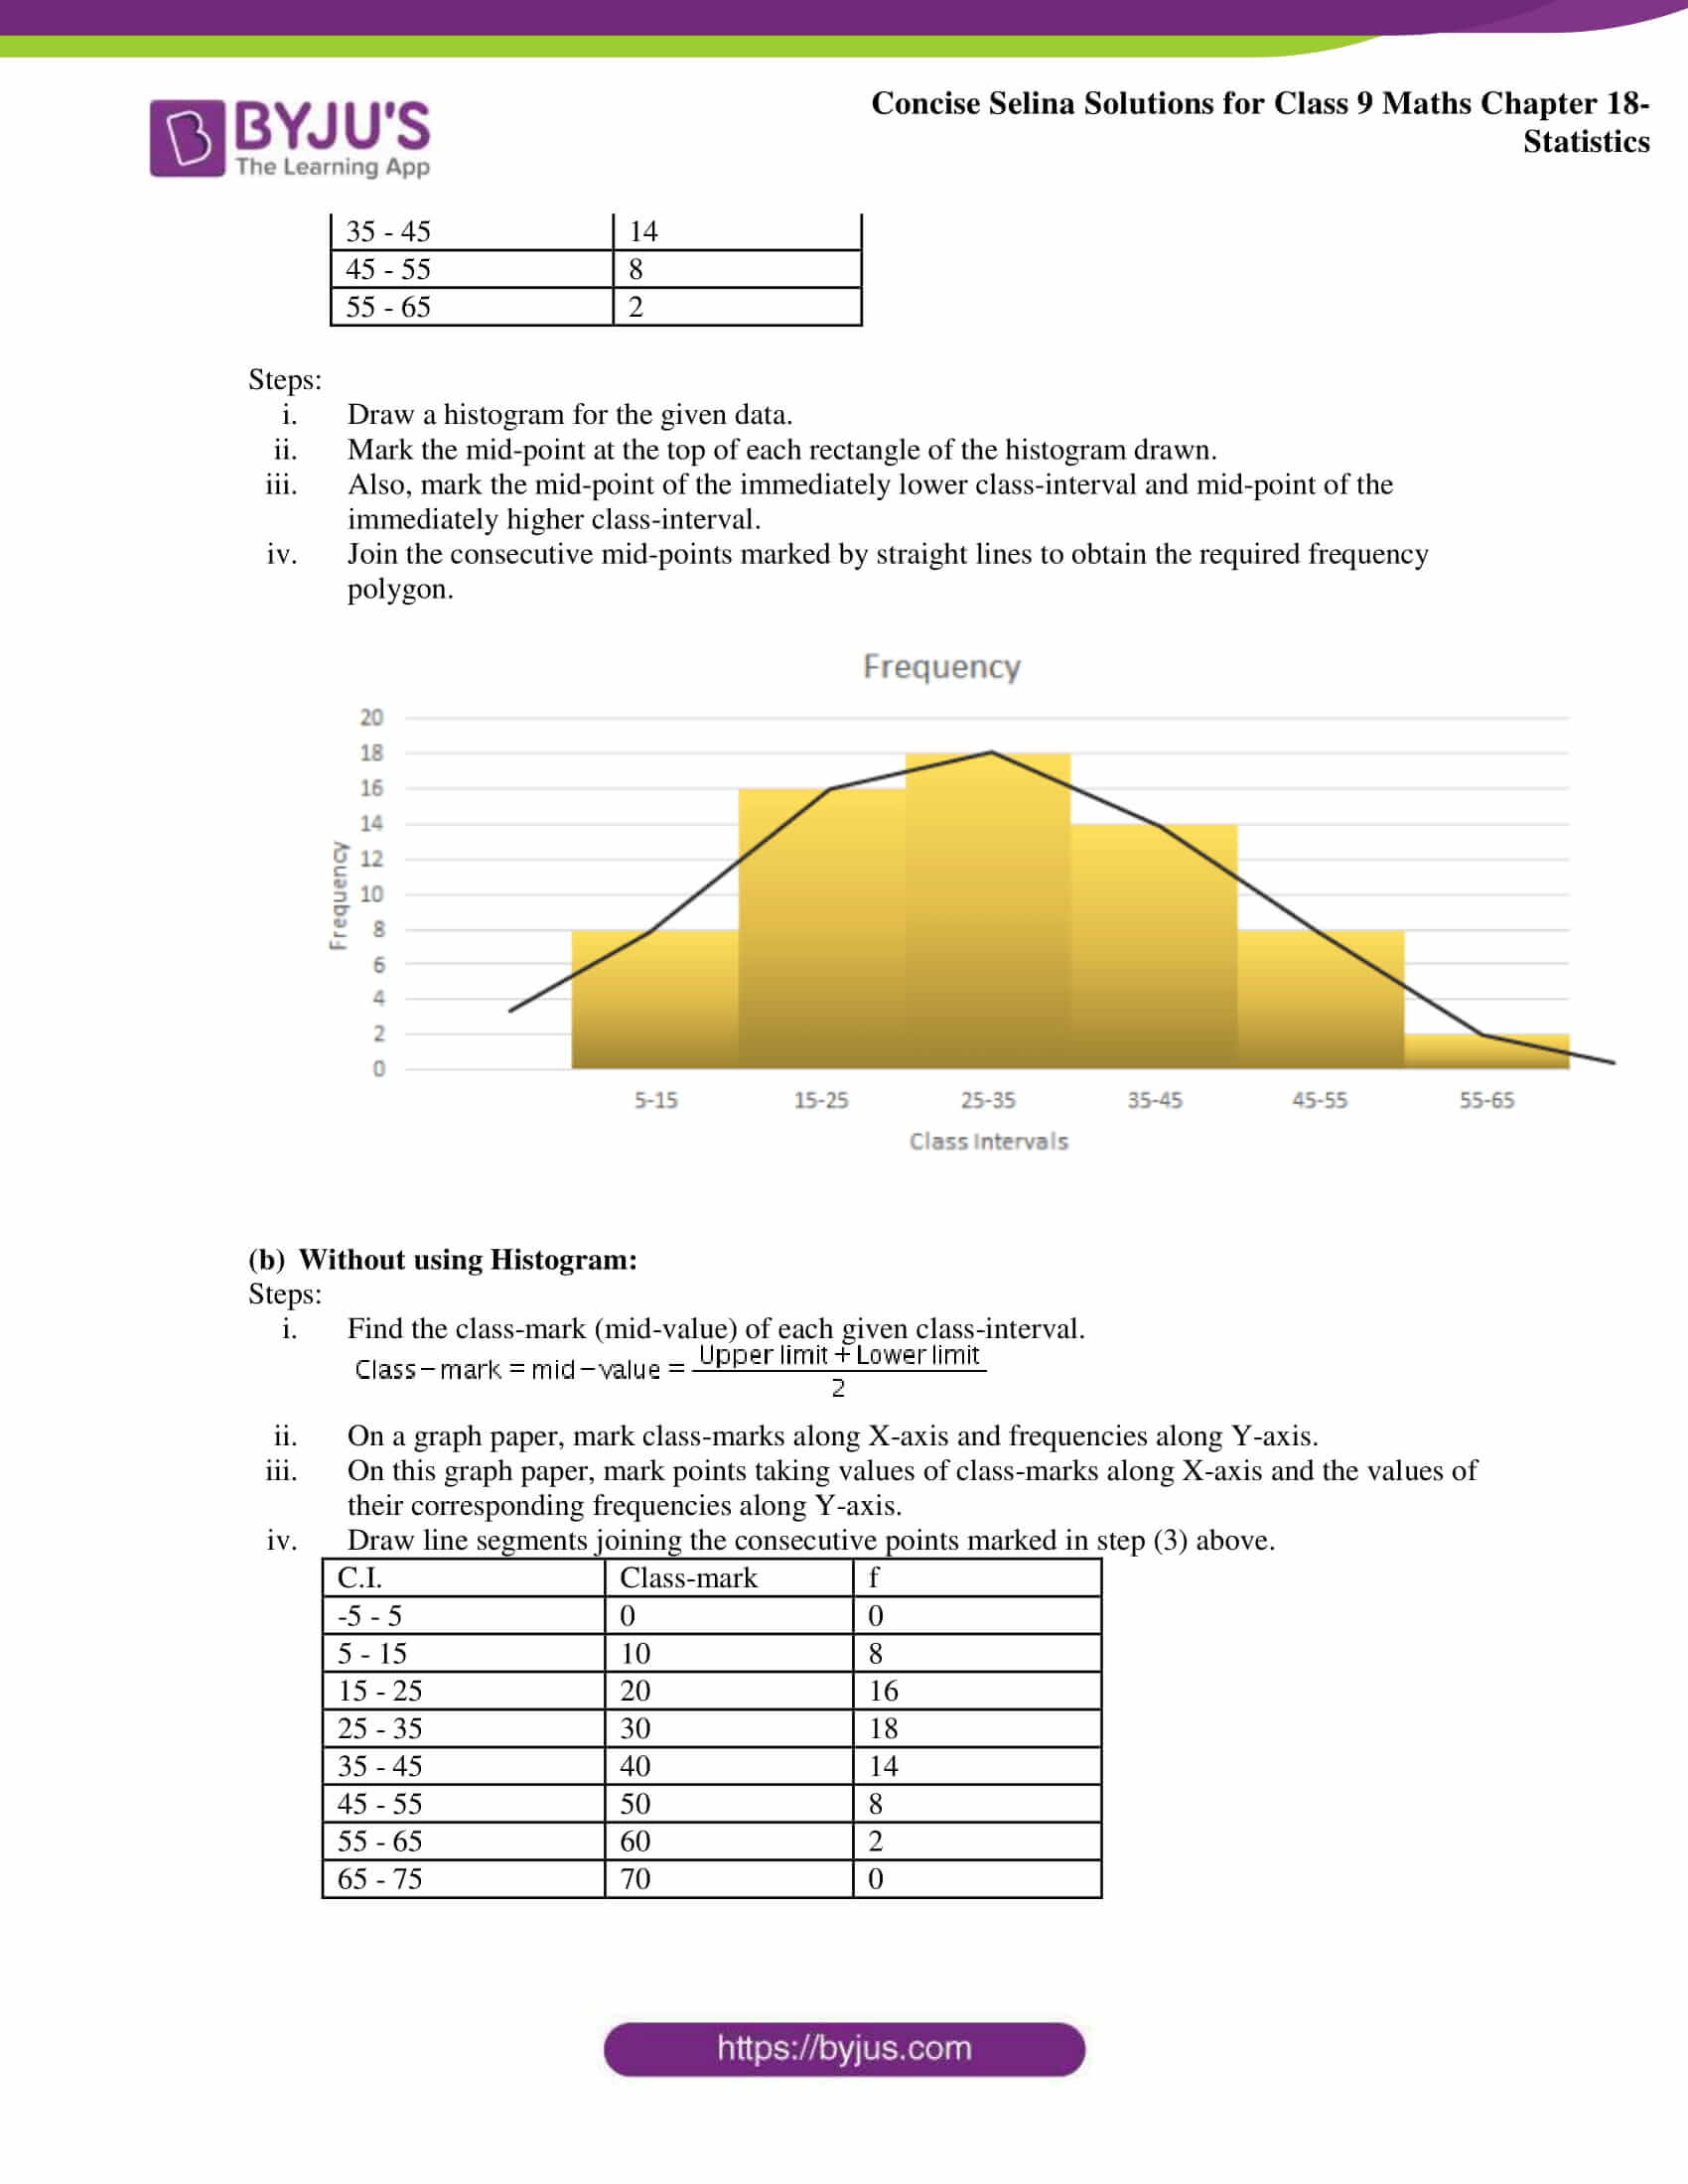 Concise Selina Solutions Class 9 Maths Chapter 18 Statistics part 12